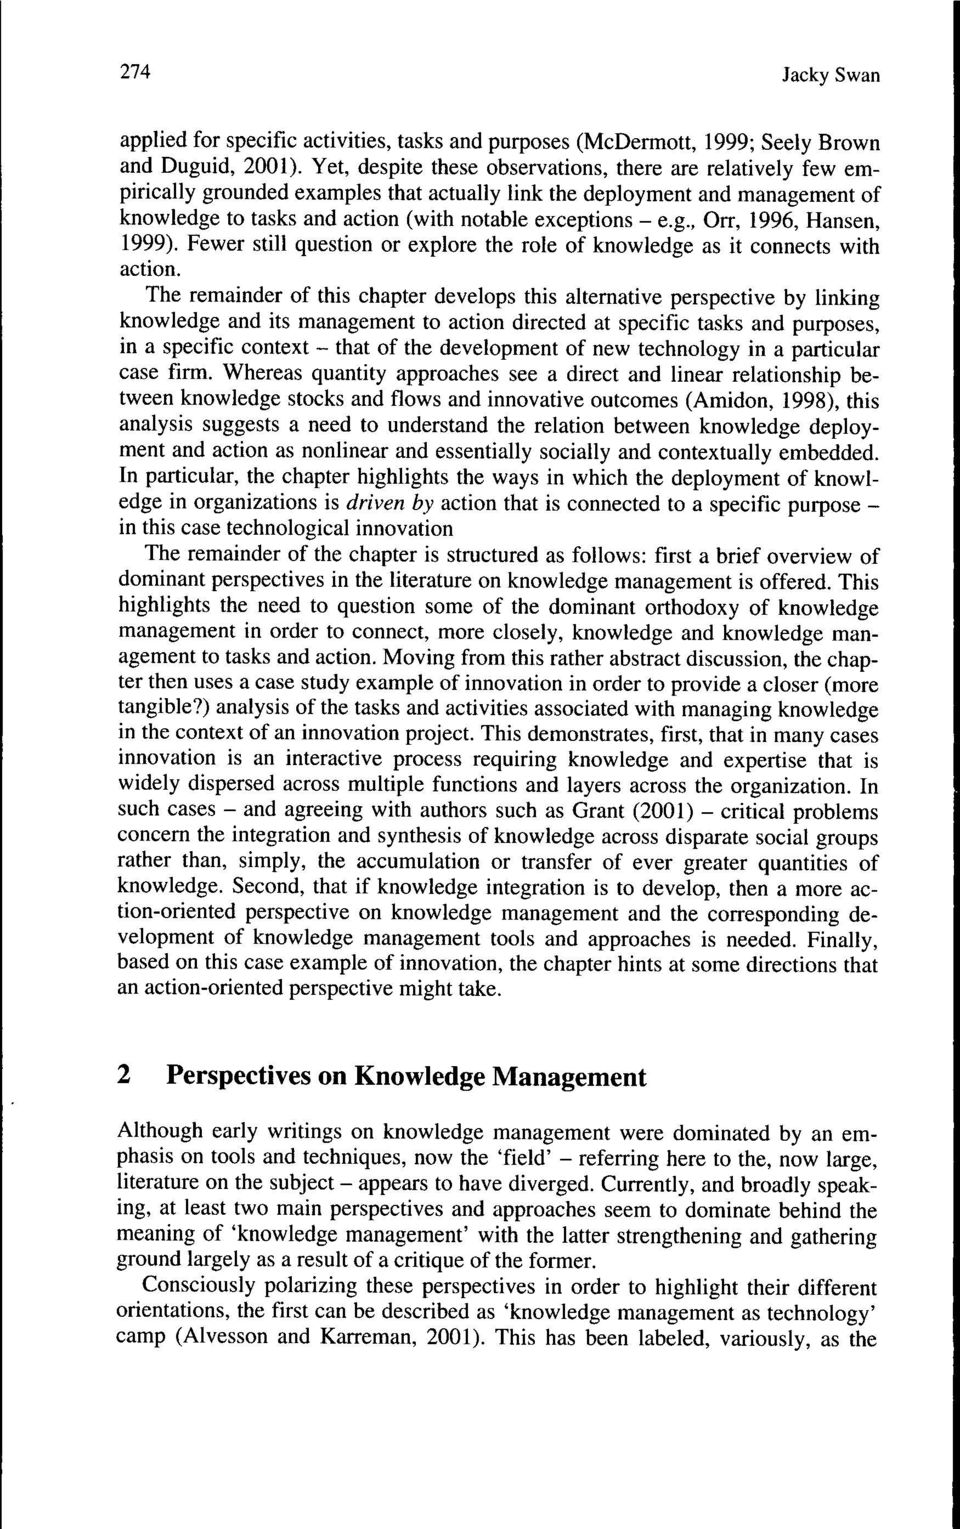 g., Orr, 1996, Hansen, 1999). Fewer still question or explore the role of knowledge as it connects with action.